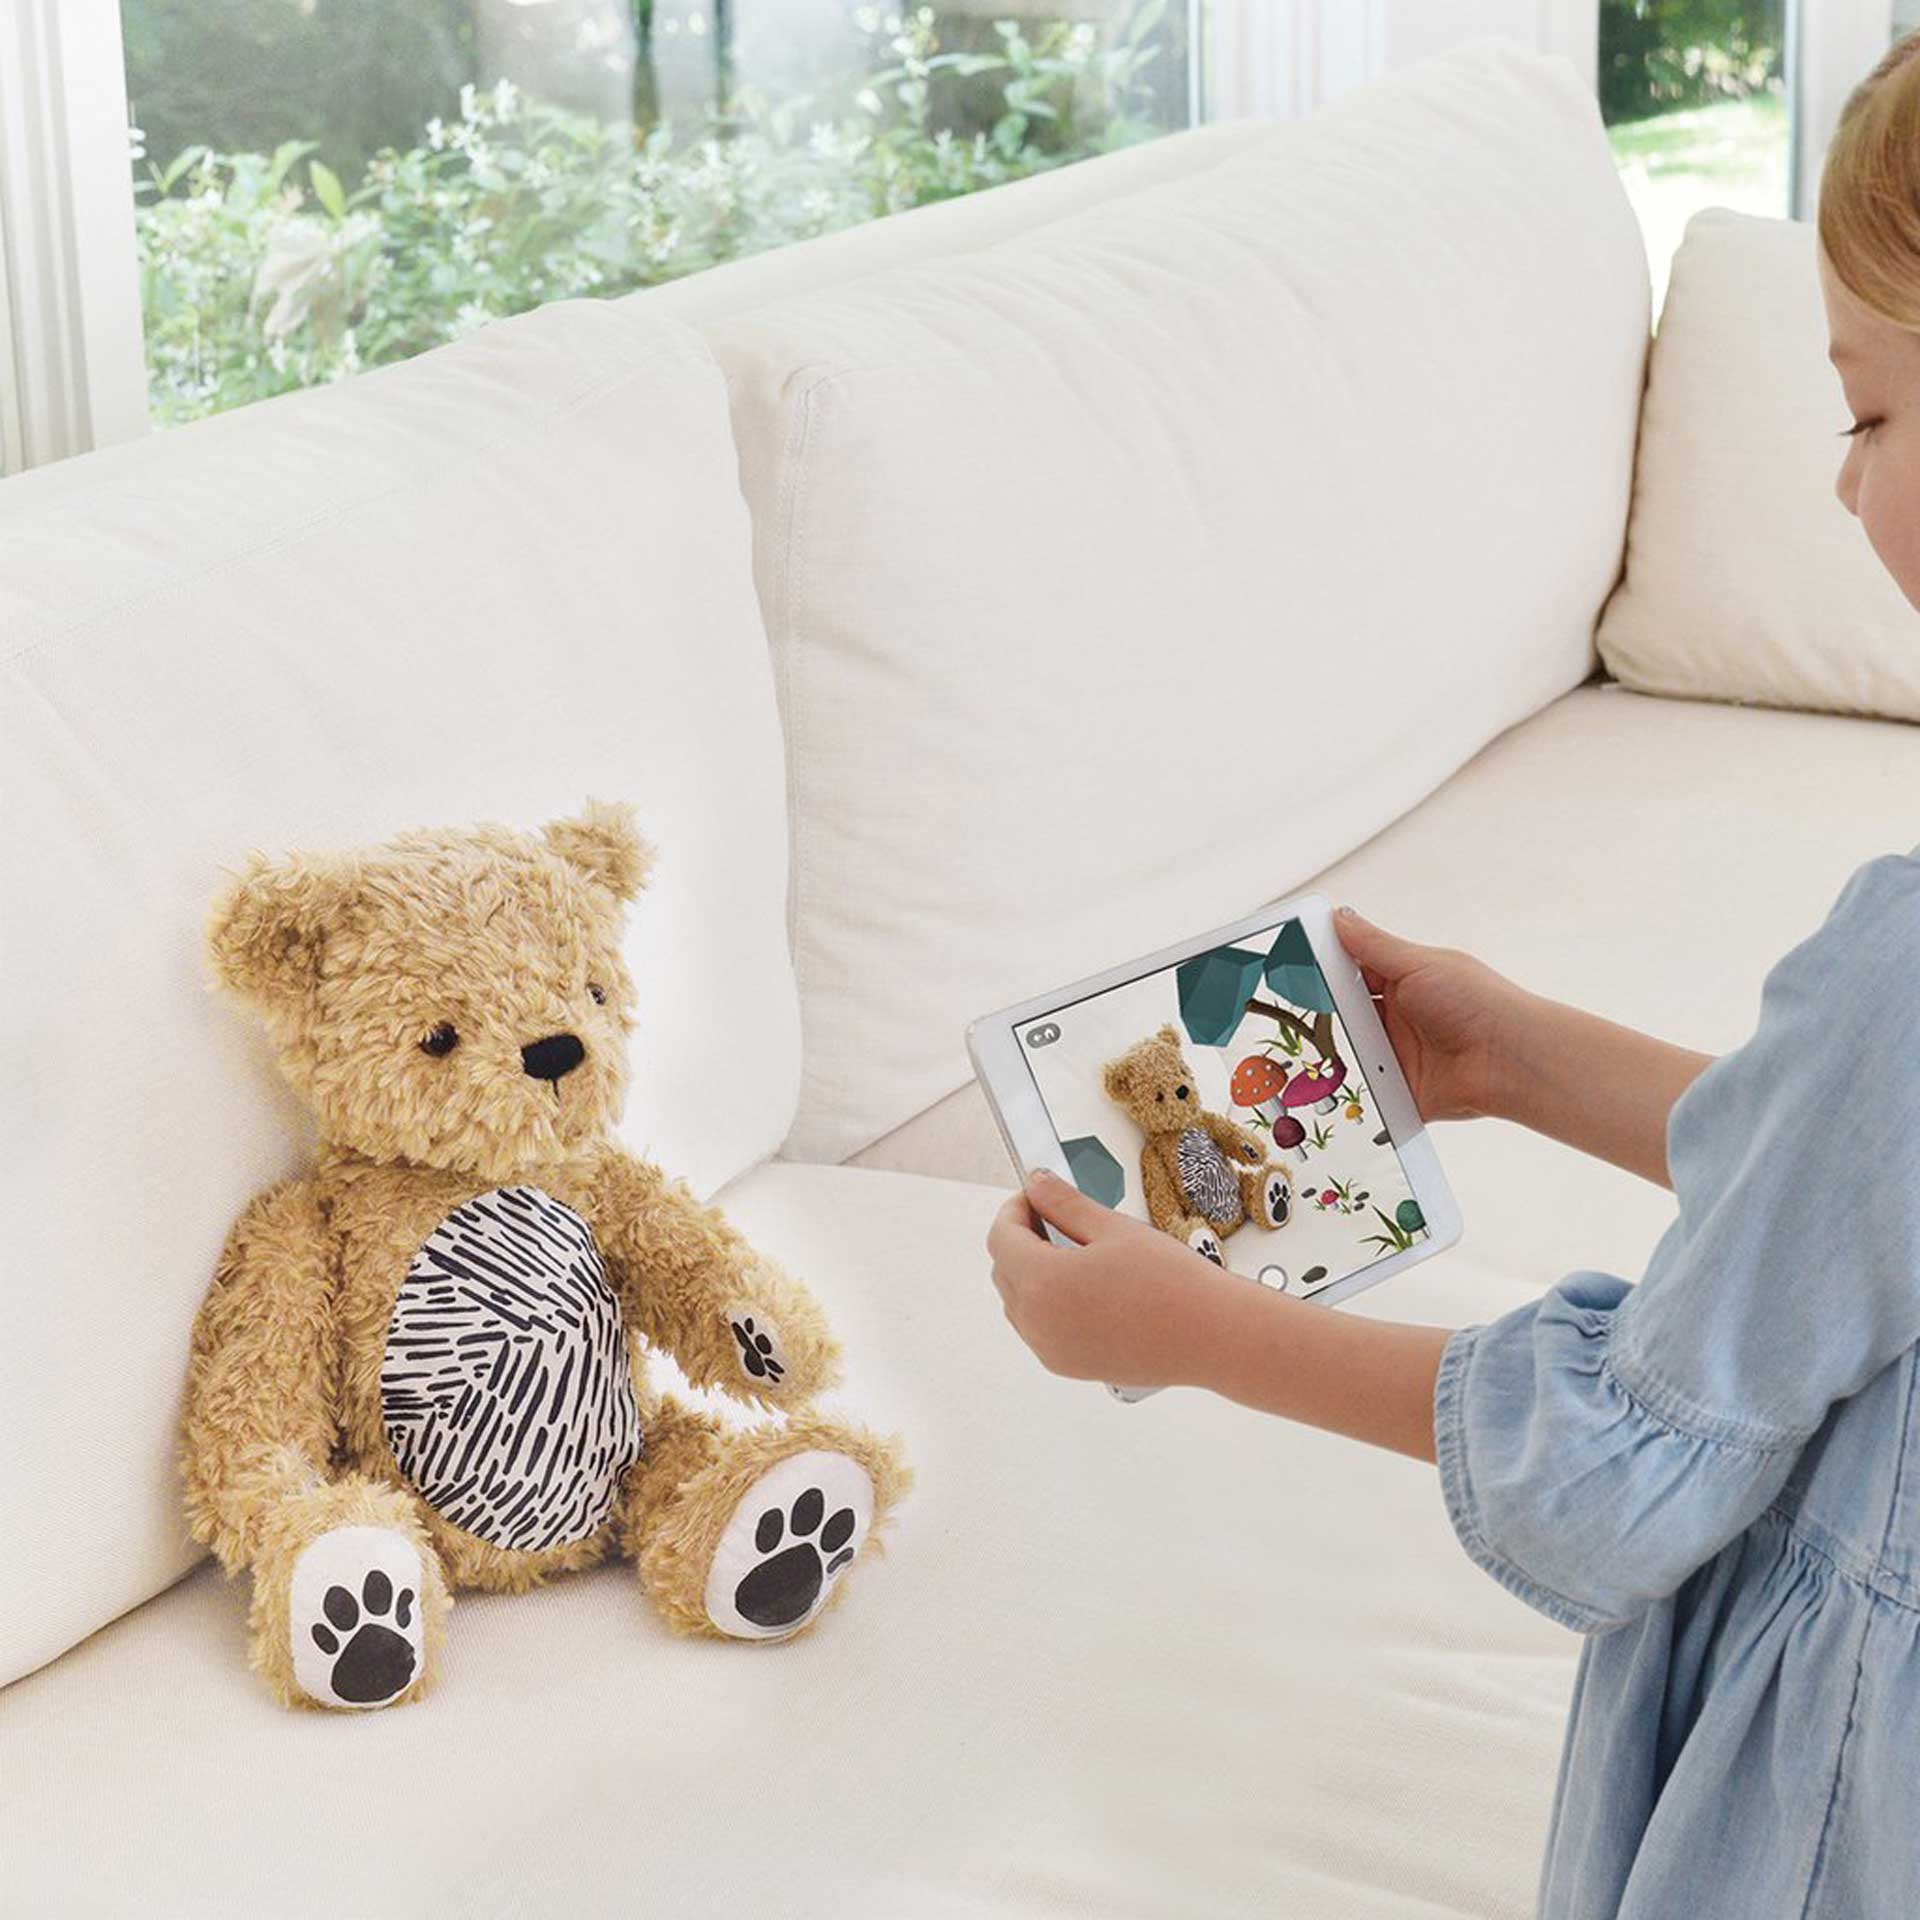 Parker Augmented Reality Teddy Bear Australia